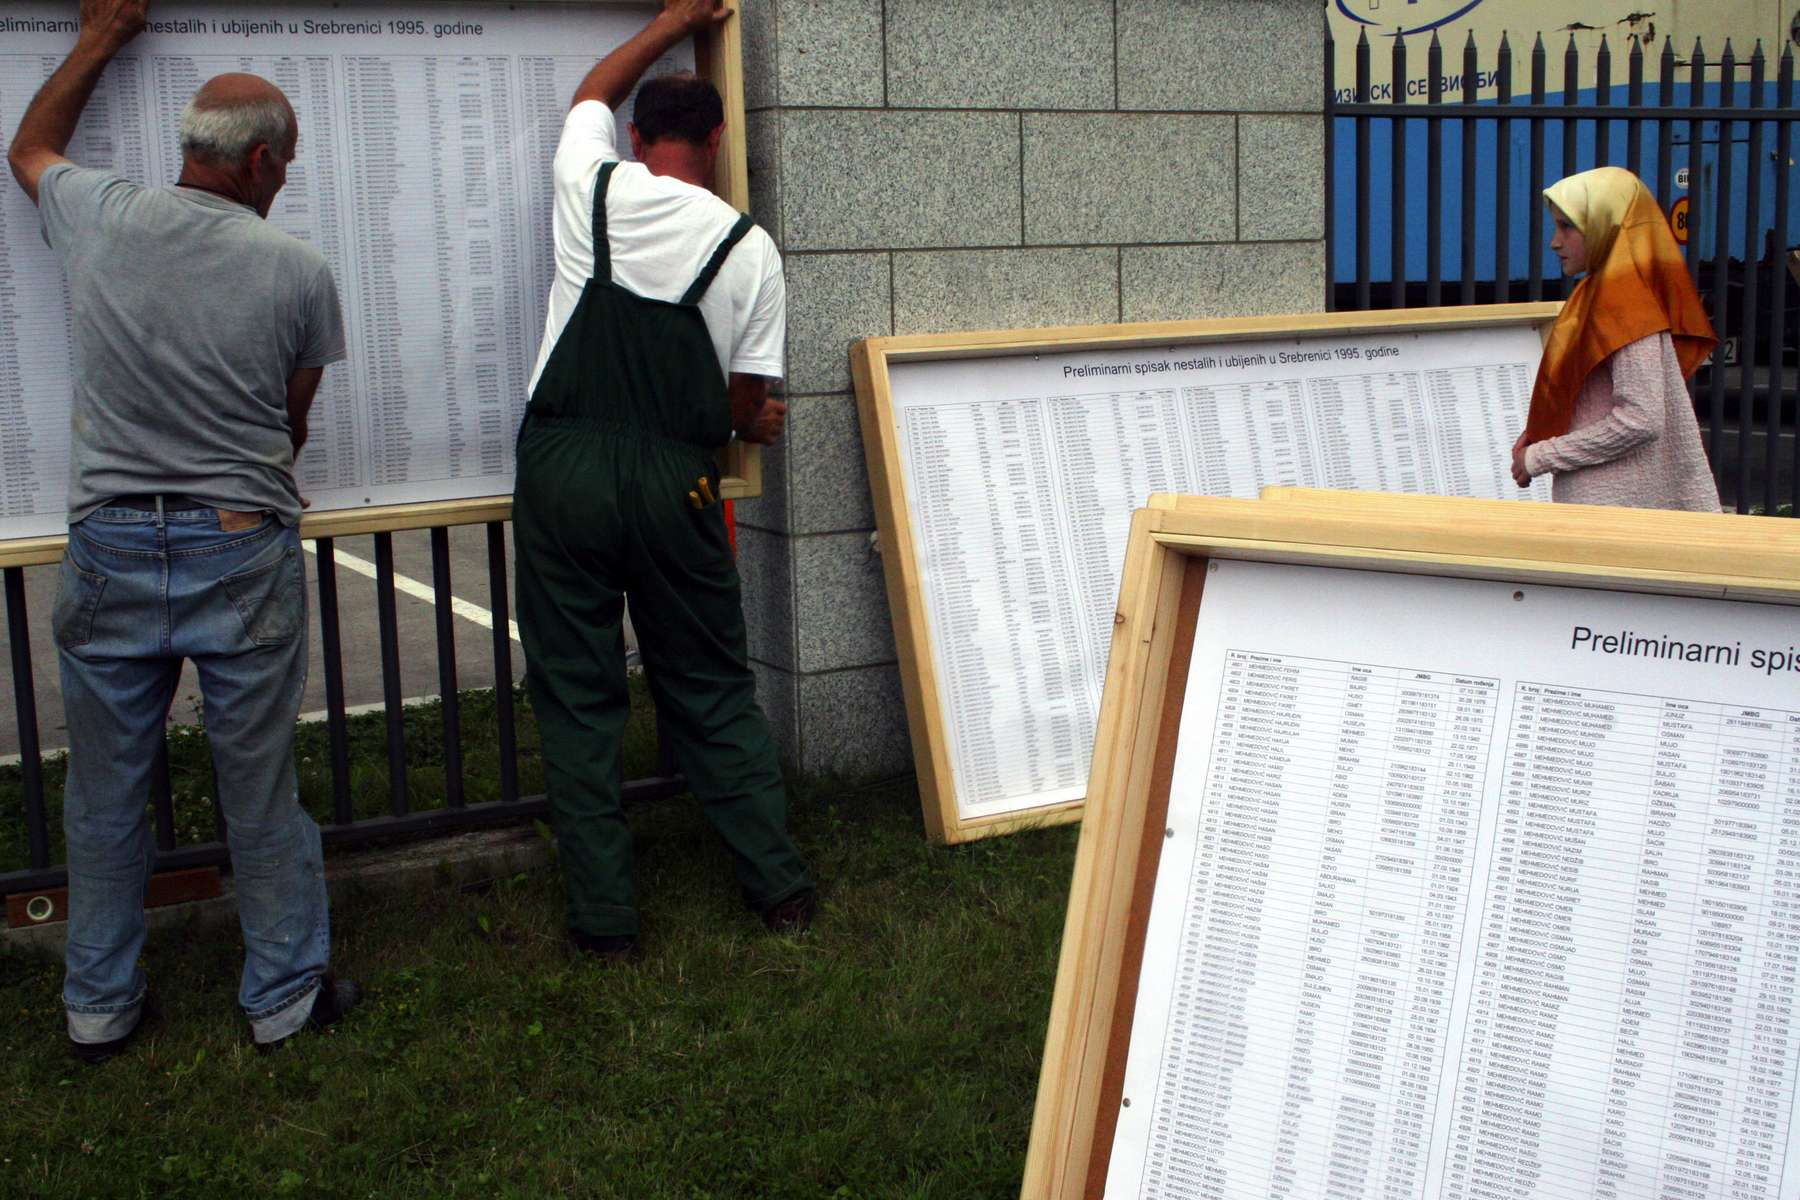 Workers put up sign boards containing the names of the 7,000 to 8,000 Muslim men and boys who were killed near Srebrenica in 1995 by Serb forces. More than 600 remains of those killed will be buried at the memorial site on July 11, the tenth anniversary of the worst genocide in Europe since the end of World War II. The men were killed in a factory complex in the village of Potocari, just a few miles from Srebrenica.